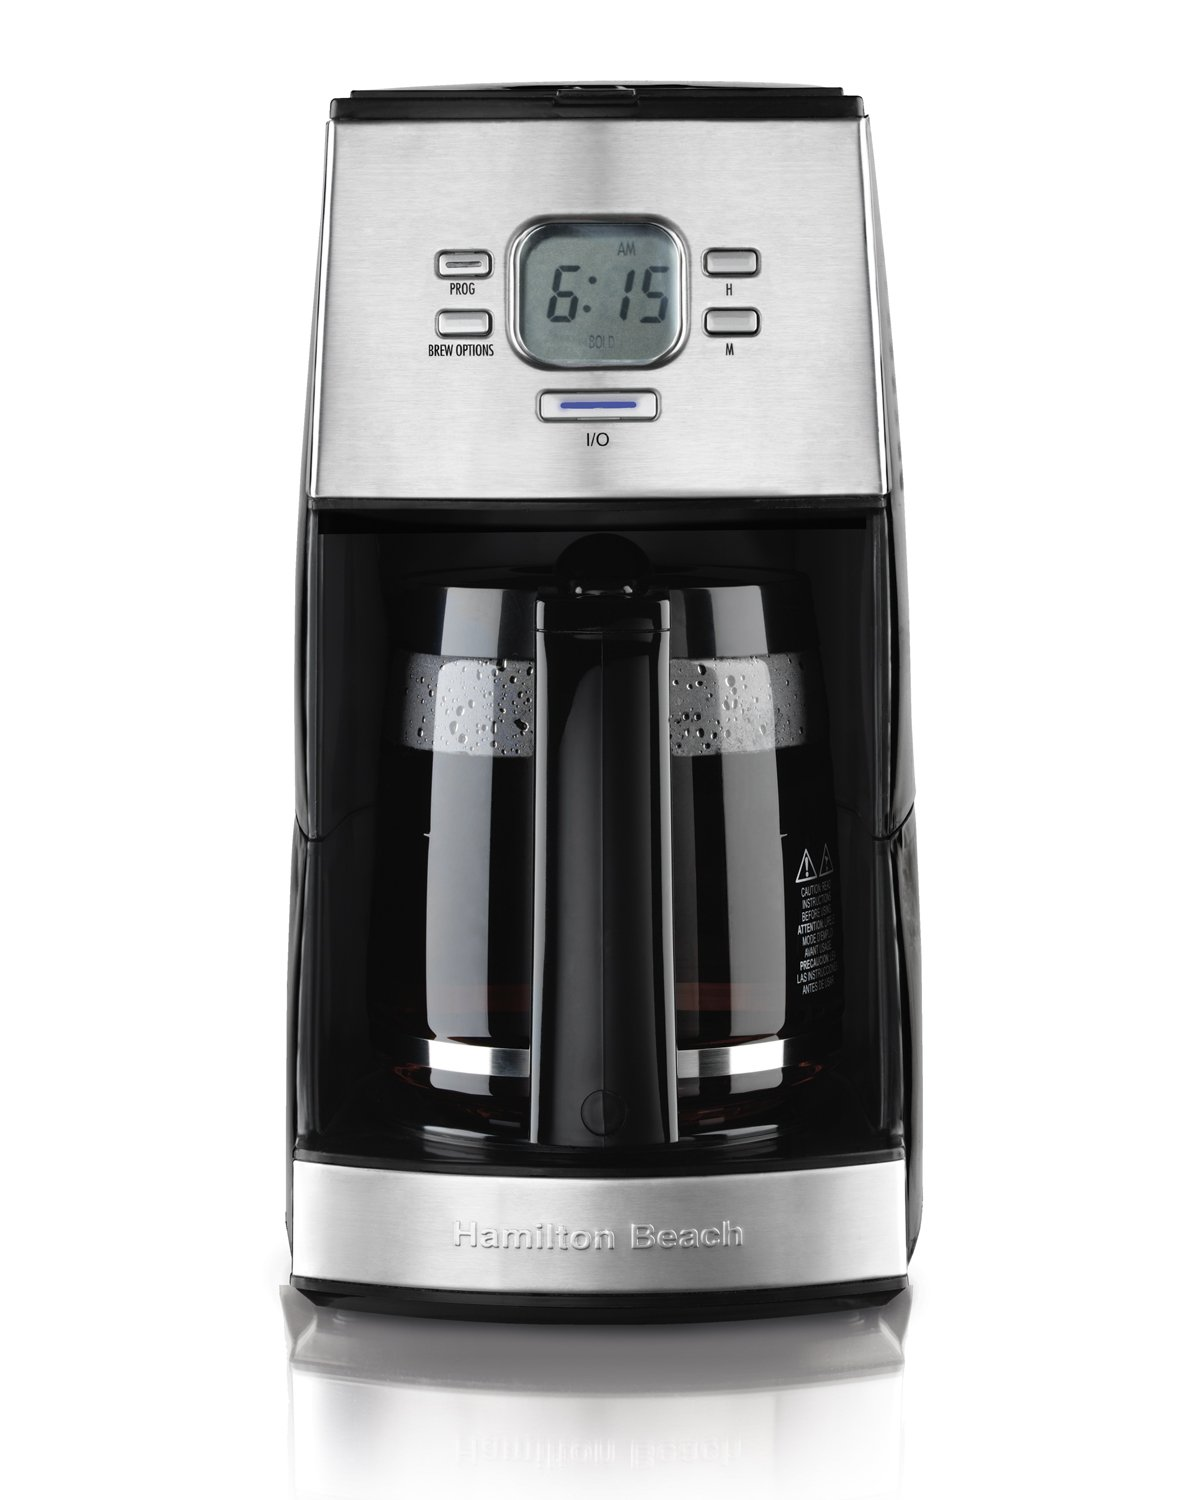 Hamilton Beach Coffee Maker 43254R: 12 Cups of Beautifully Brewed Delight